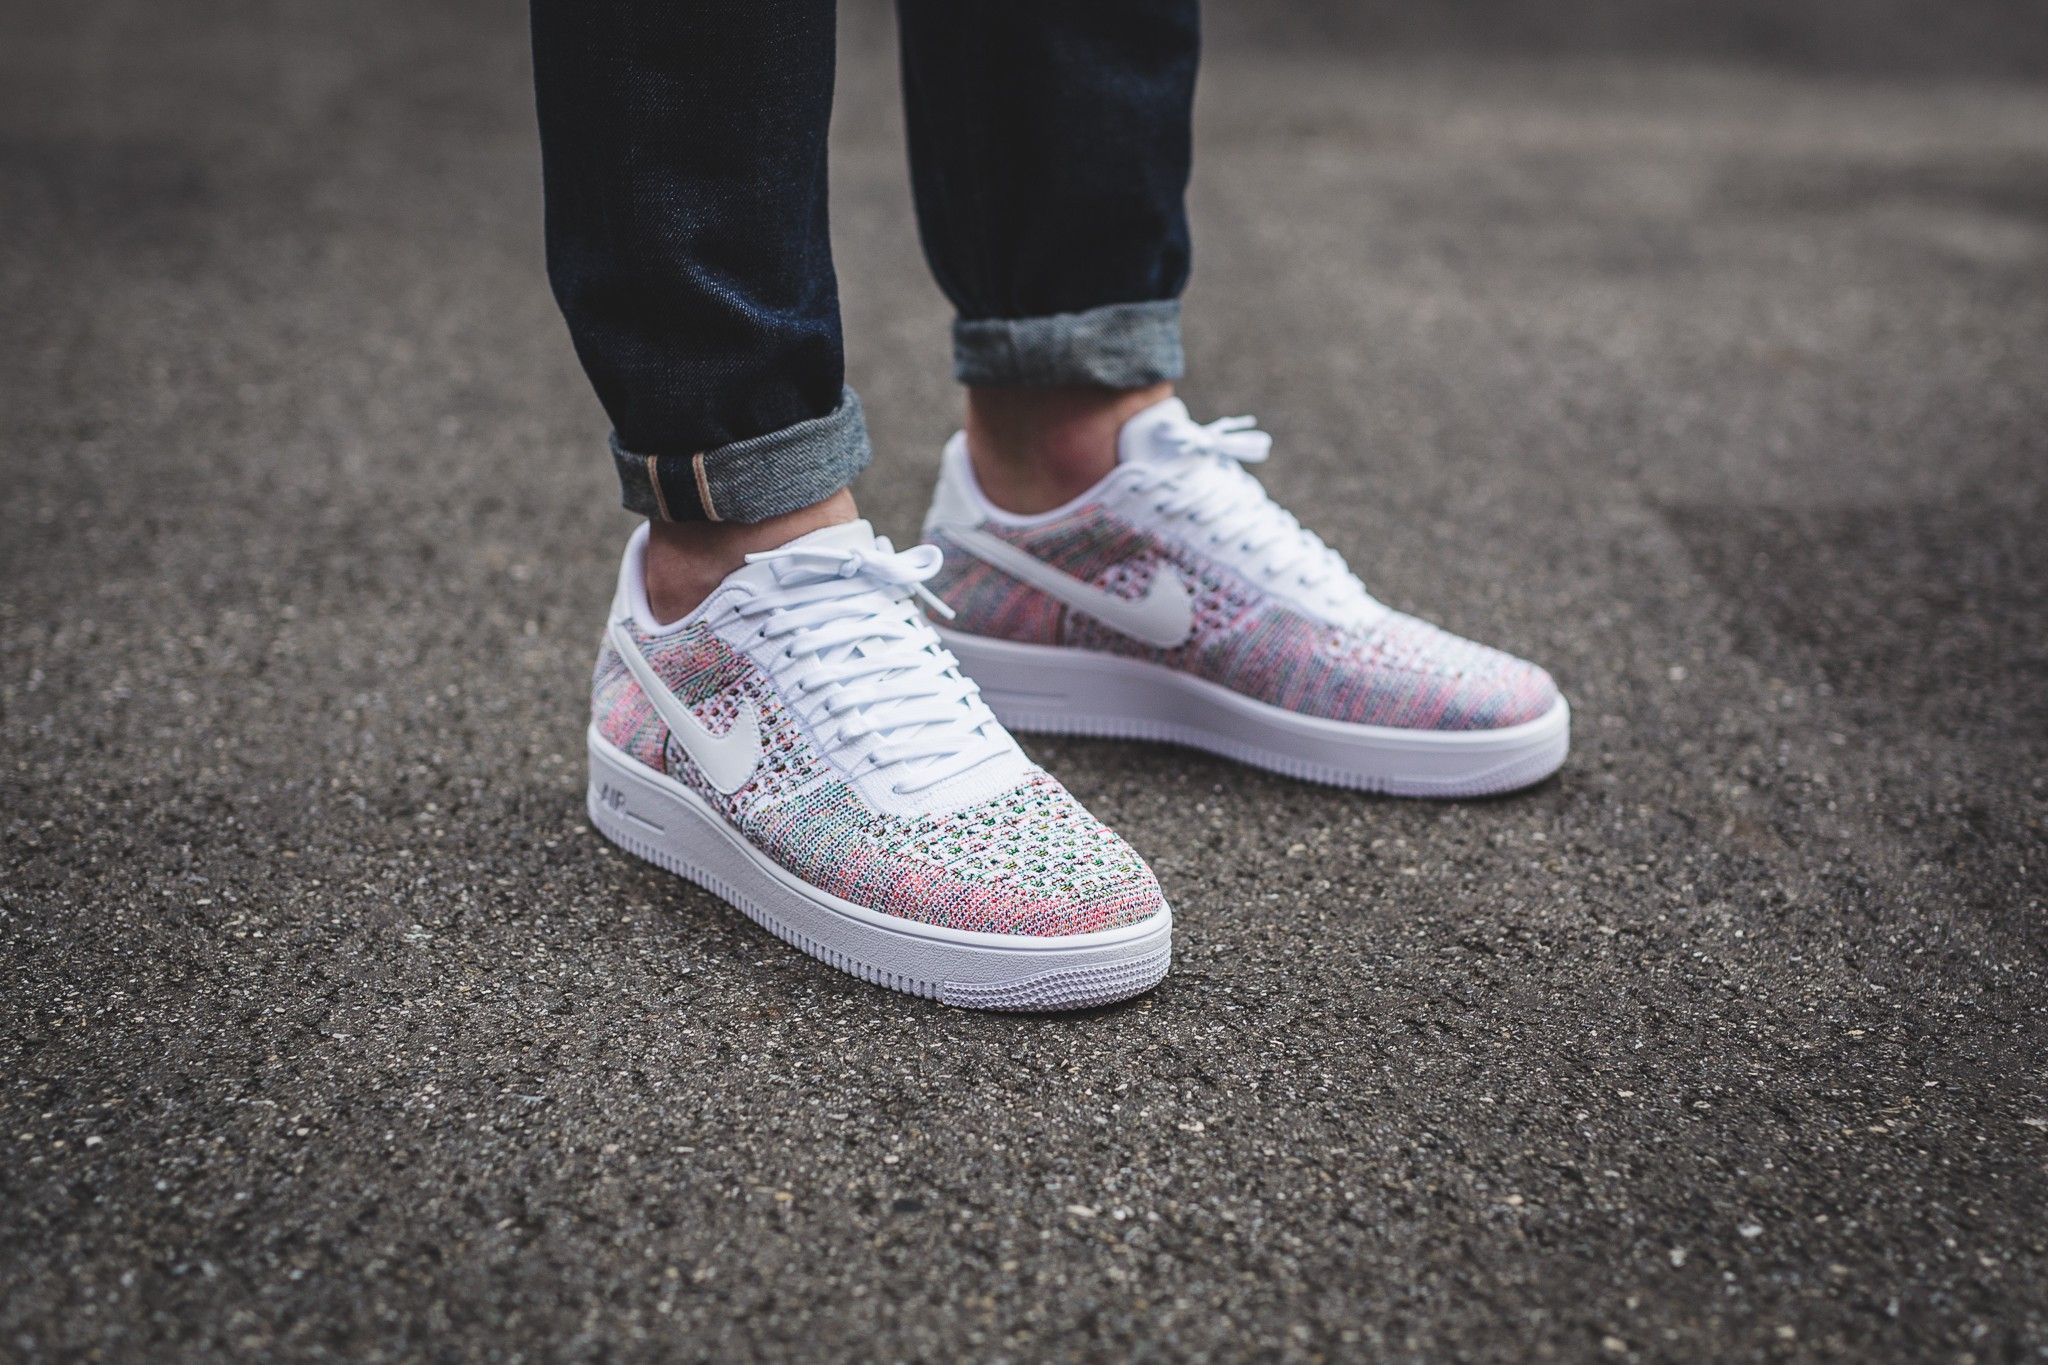 purchase cheap dab1a f306c Nike Air Force 1 Ultra Flyknit Low 817419-701, Titolo ...